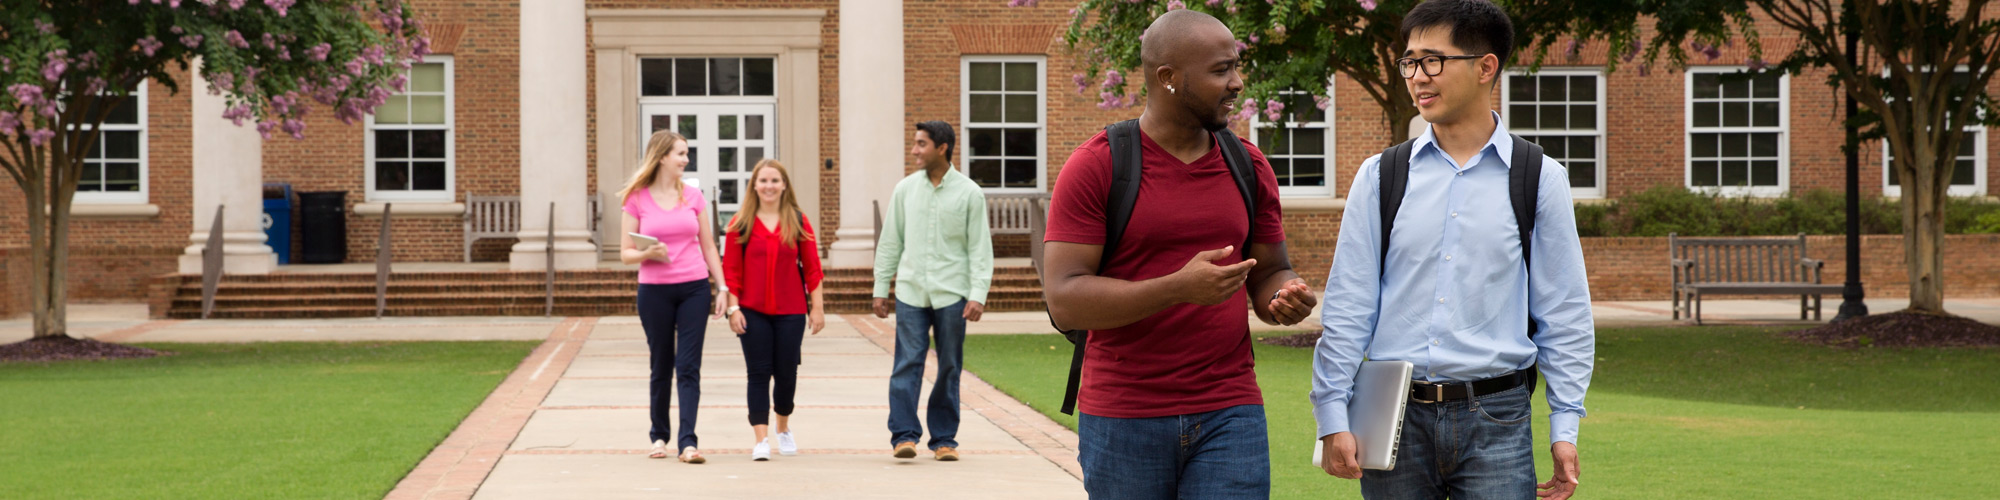 Five students walking in discussion on Cary Academy campus